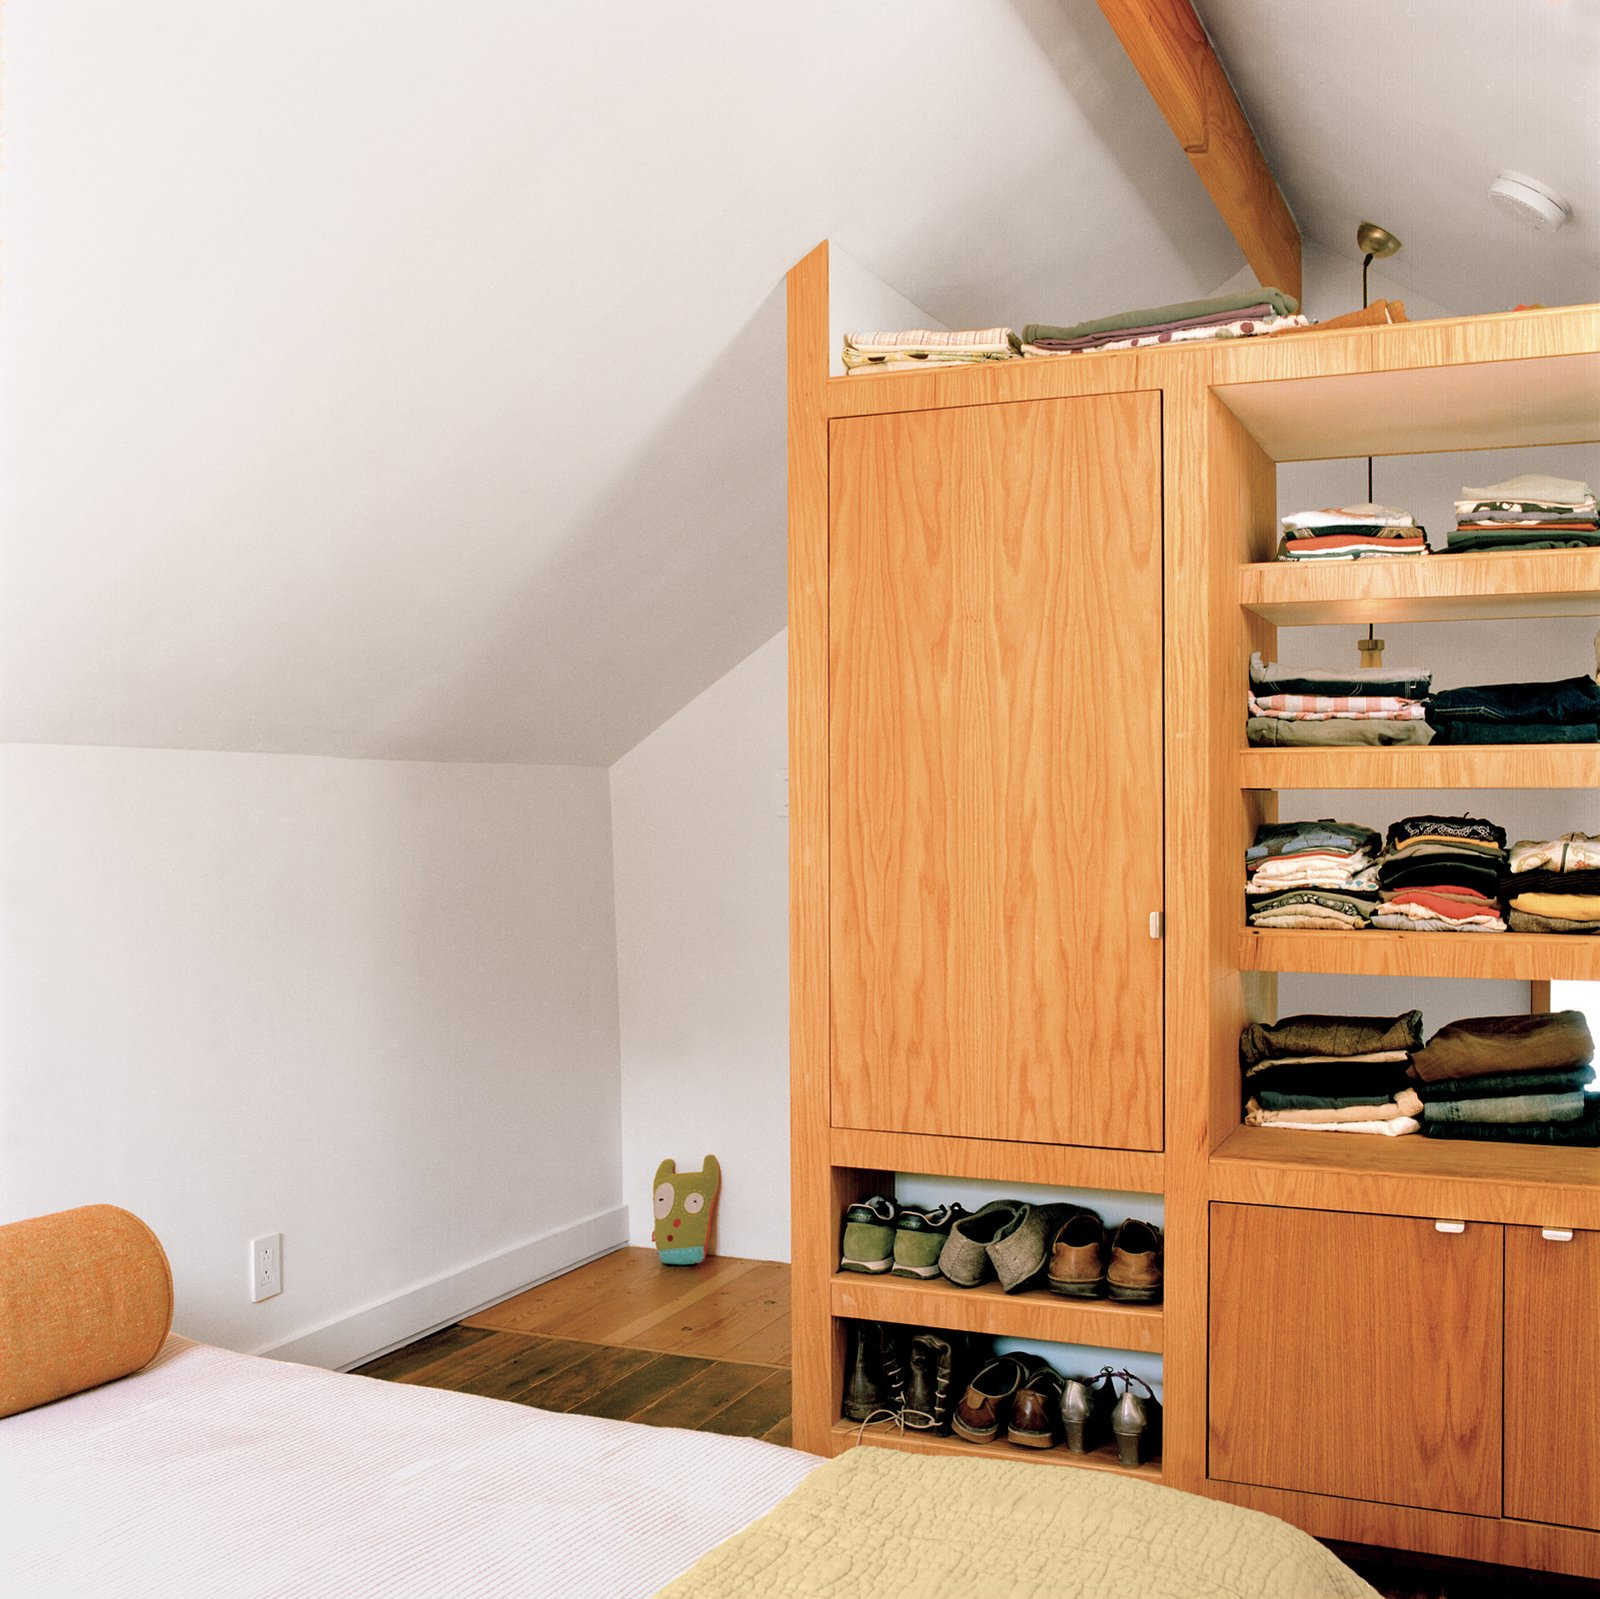 Shelves, Cabinet, Bedroom, and Bed Tolya and Otto's handiwork, such as the cabinetry in the master bedroom, helps keep the lines of the house clean and the rooms tidy.  Best Bedroom Shelves Cabinet Photos from Built-In Style